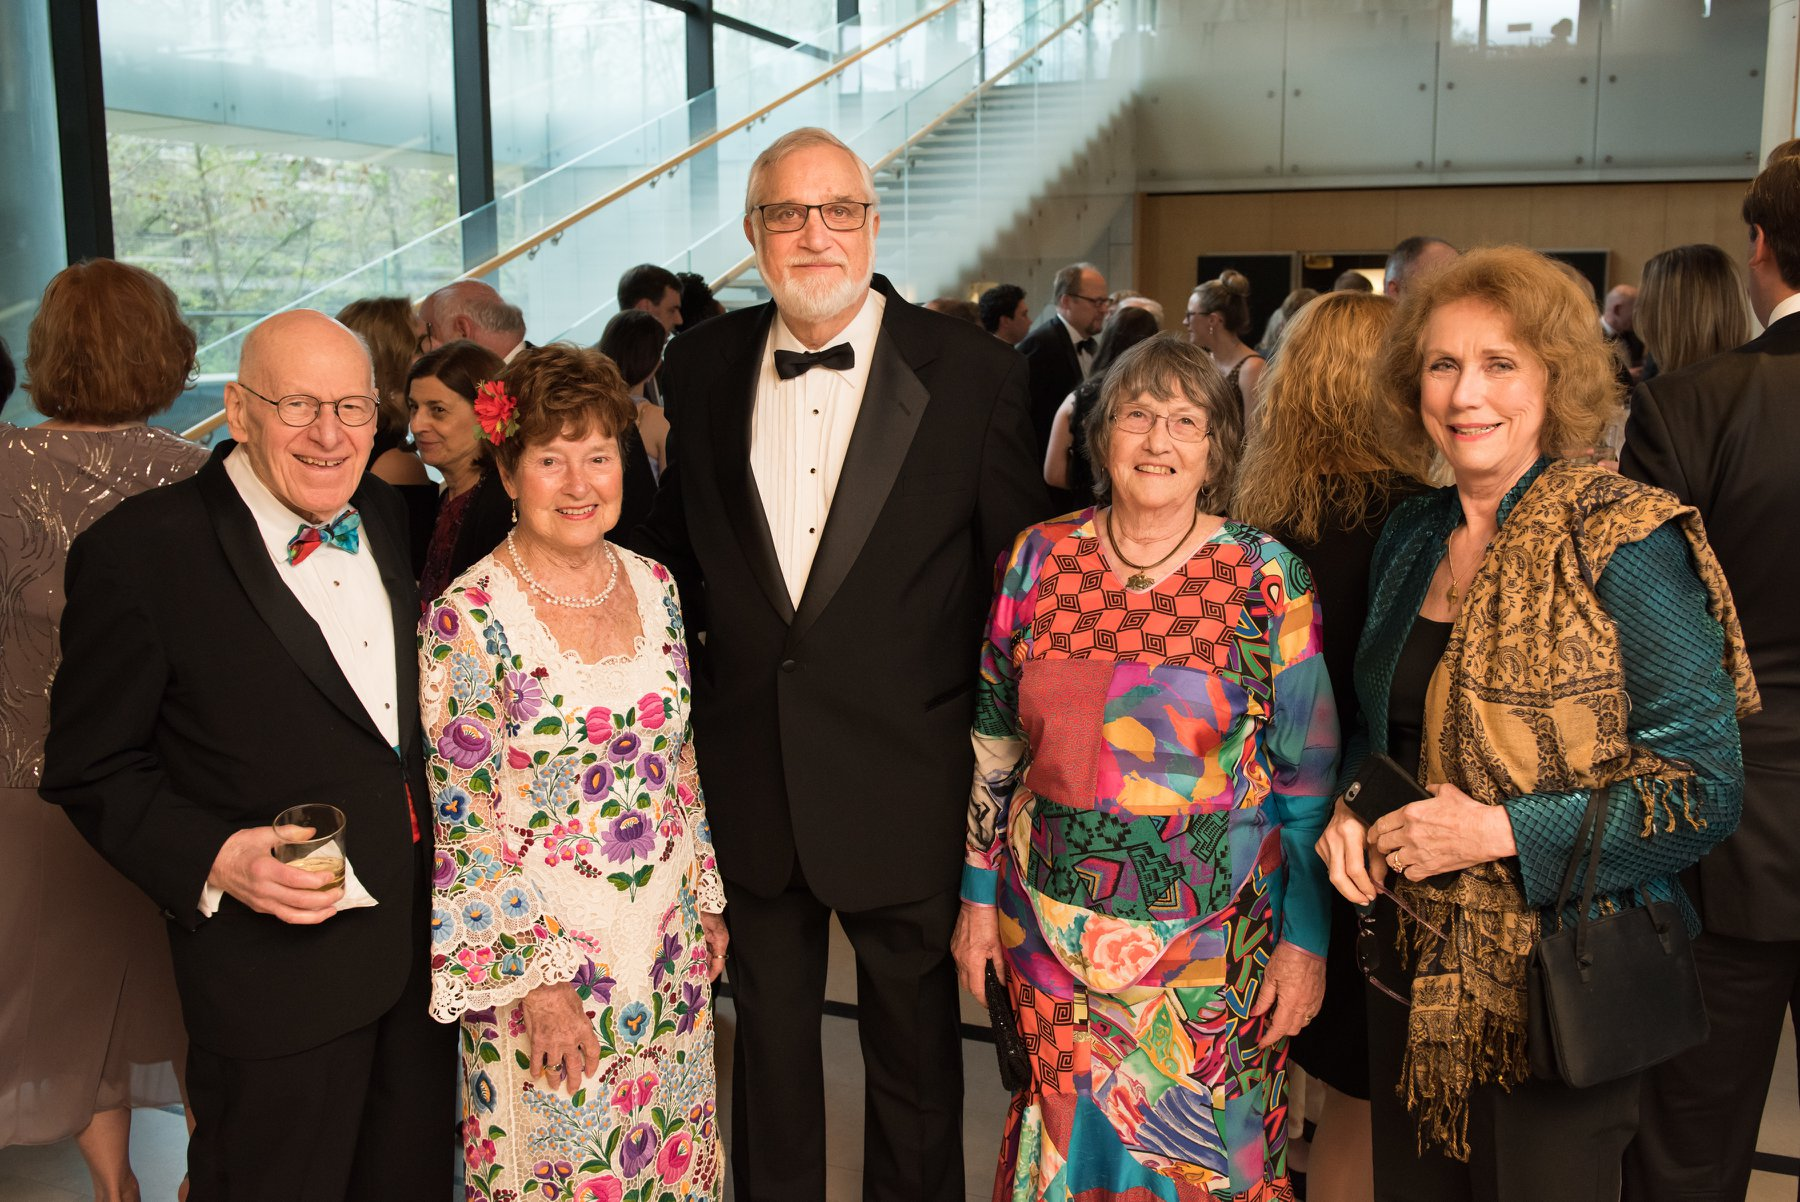 Ted Horvath, Dr. Jenny Brown, George and Sandy Pogan, Anne C Bader